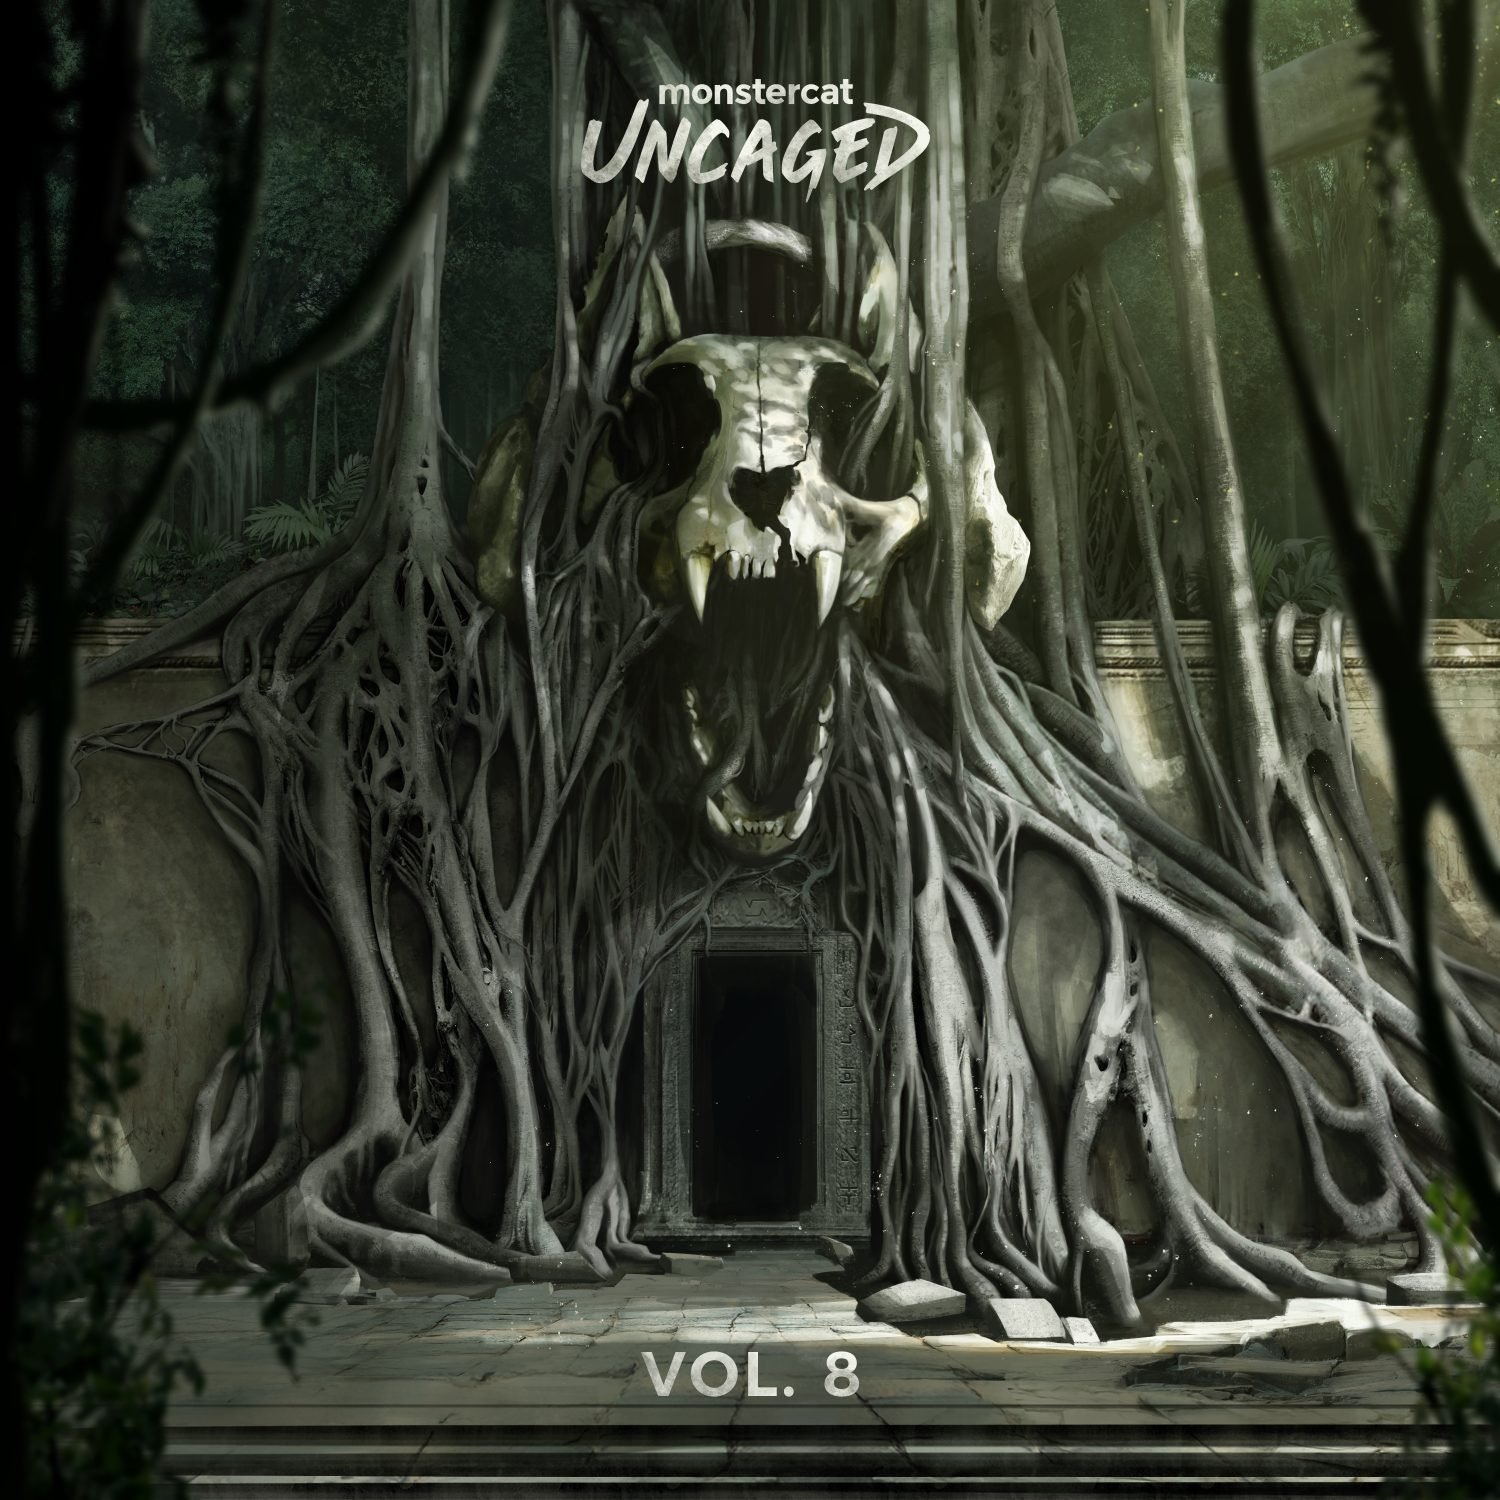 Monstercat-Uncaged